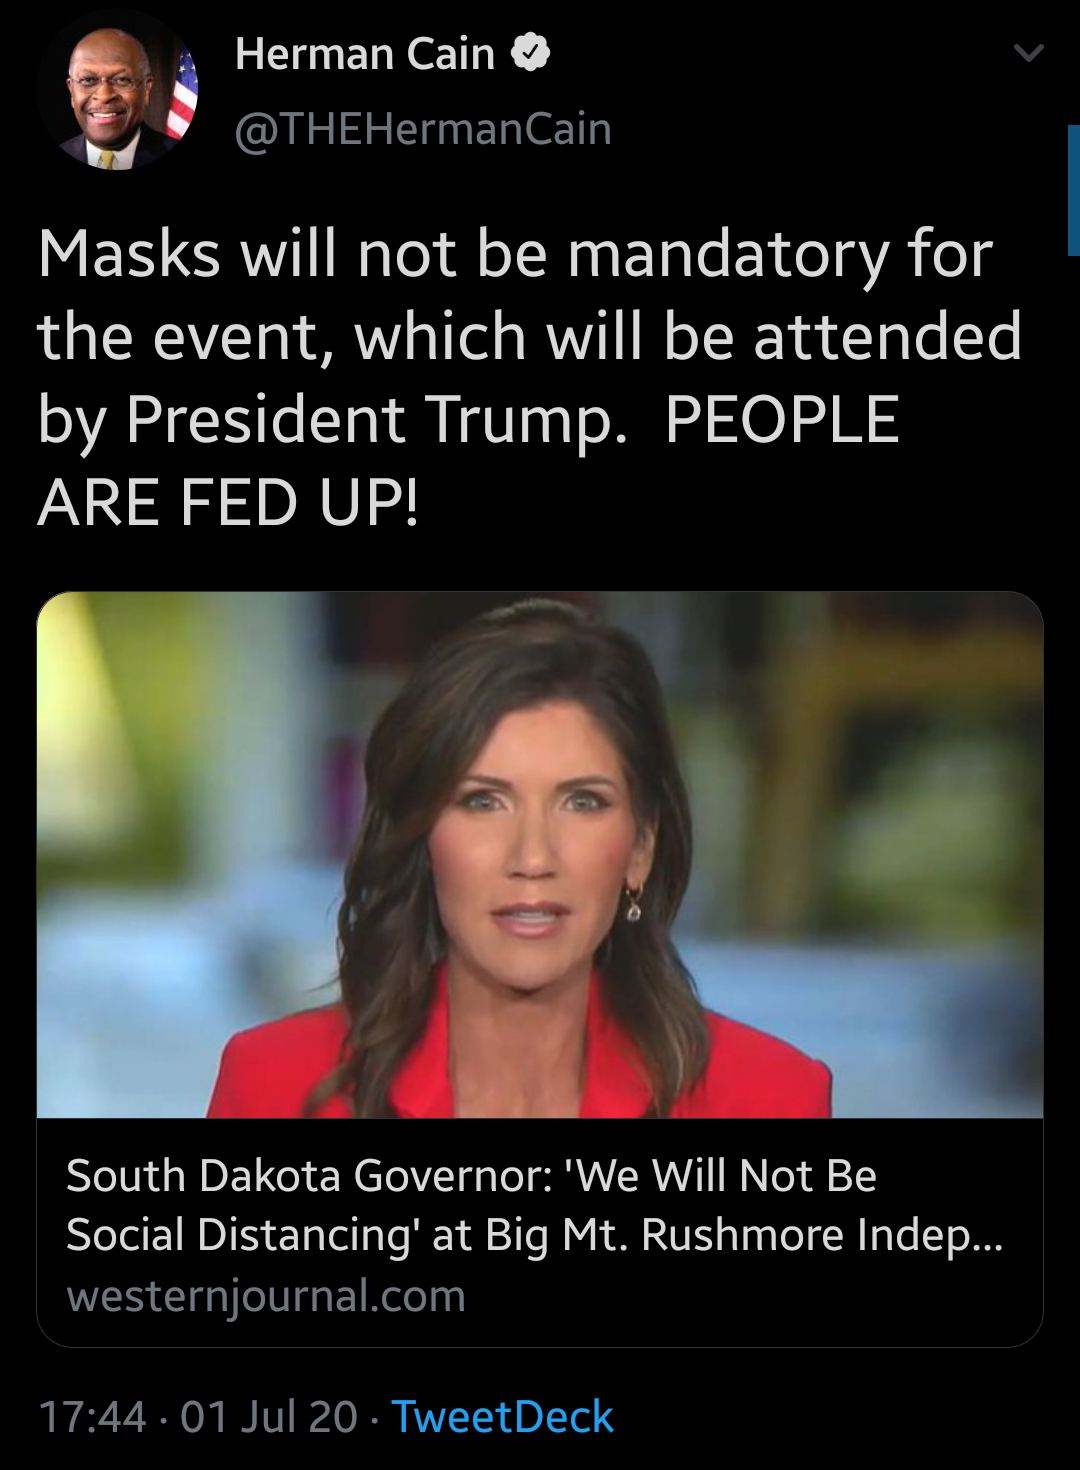 South Dakota Governor said there will be optional mask requirements and no social distancing at the fireworks display at Mount Rushmore.